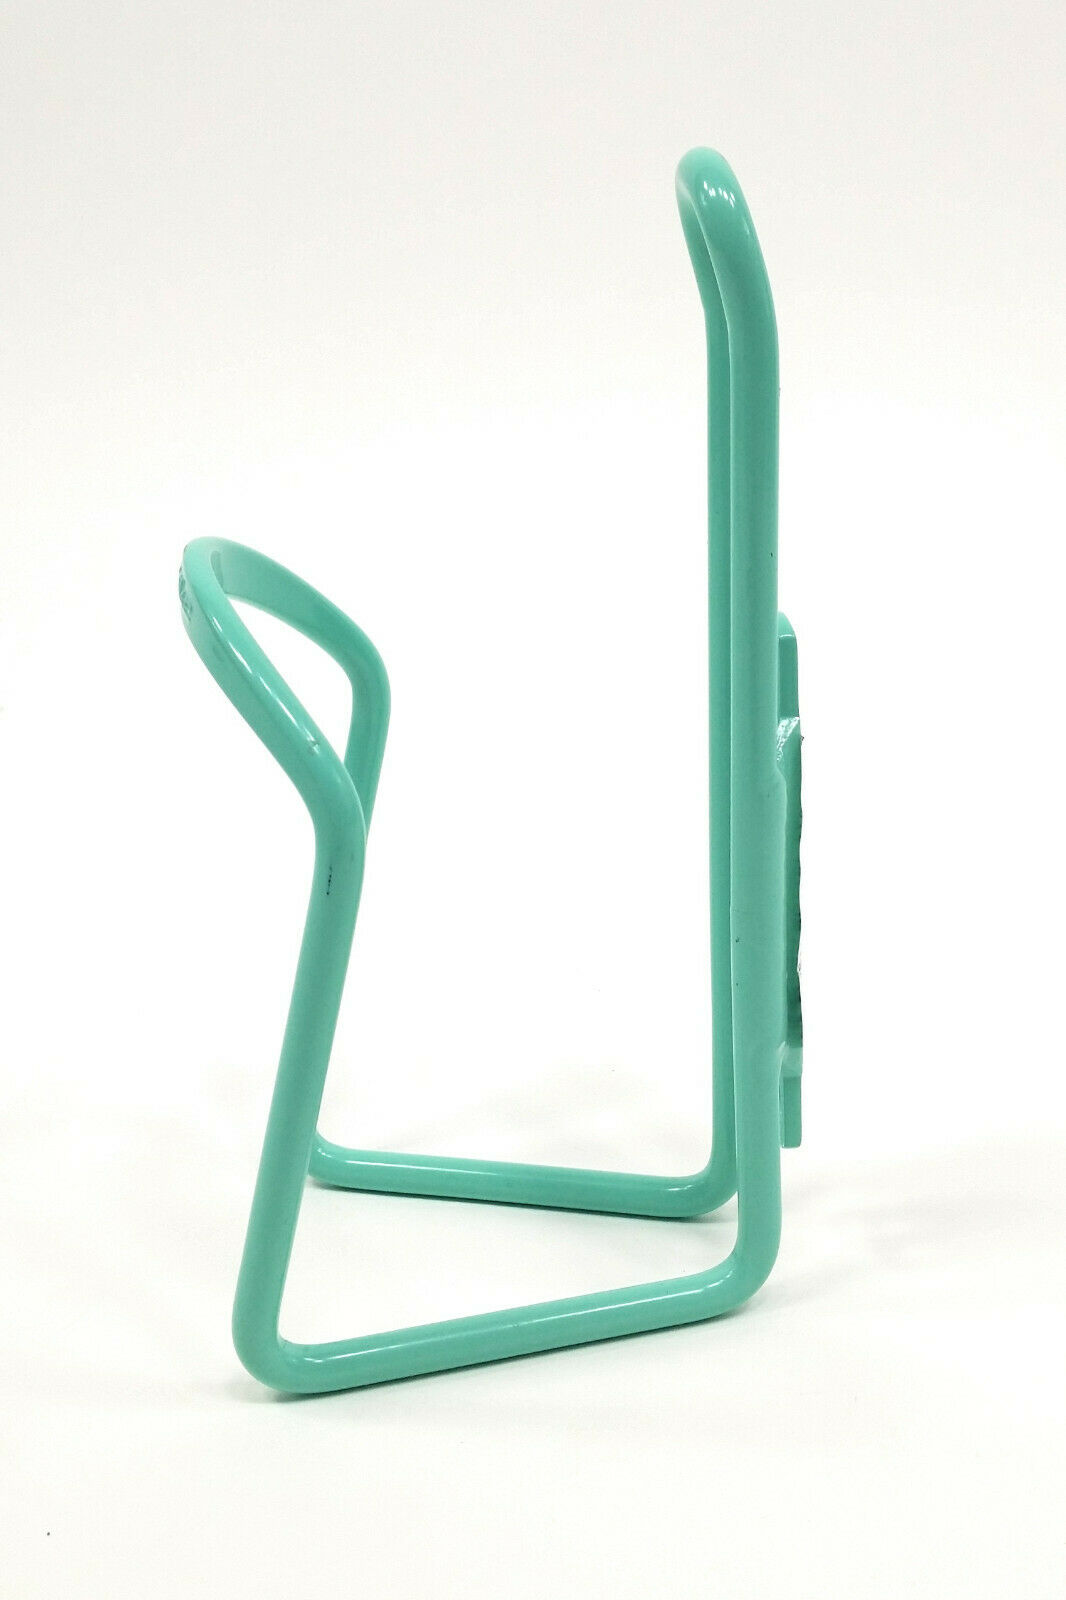 Planet Bike 6mm Bottle Bicycle Cage-Alloy-Celestial Green-One Cage-New